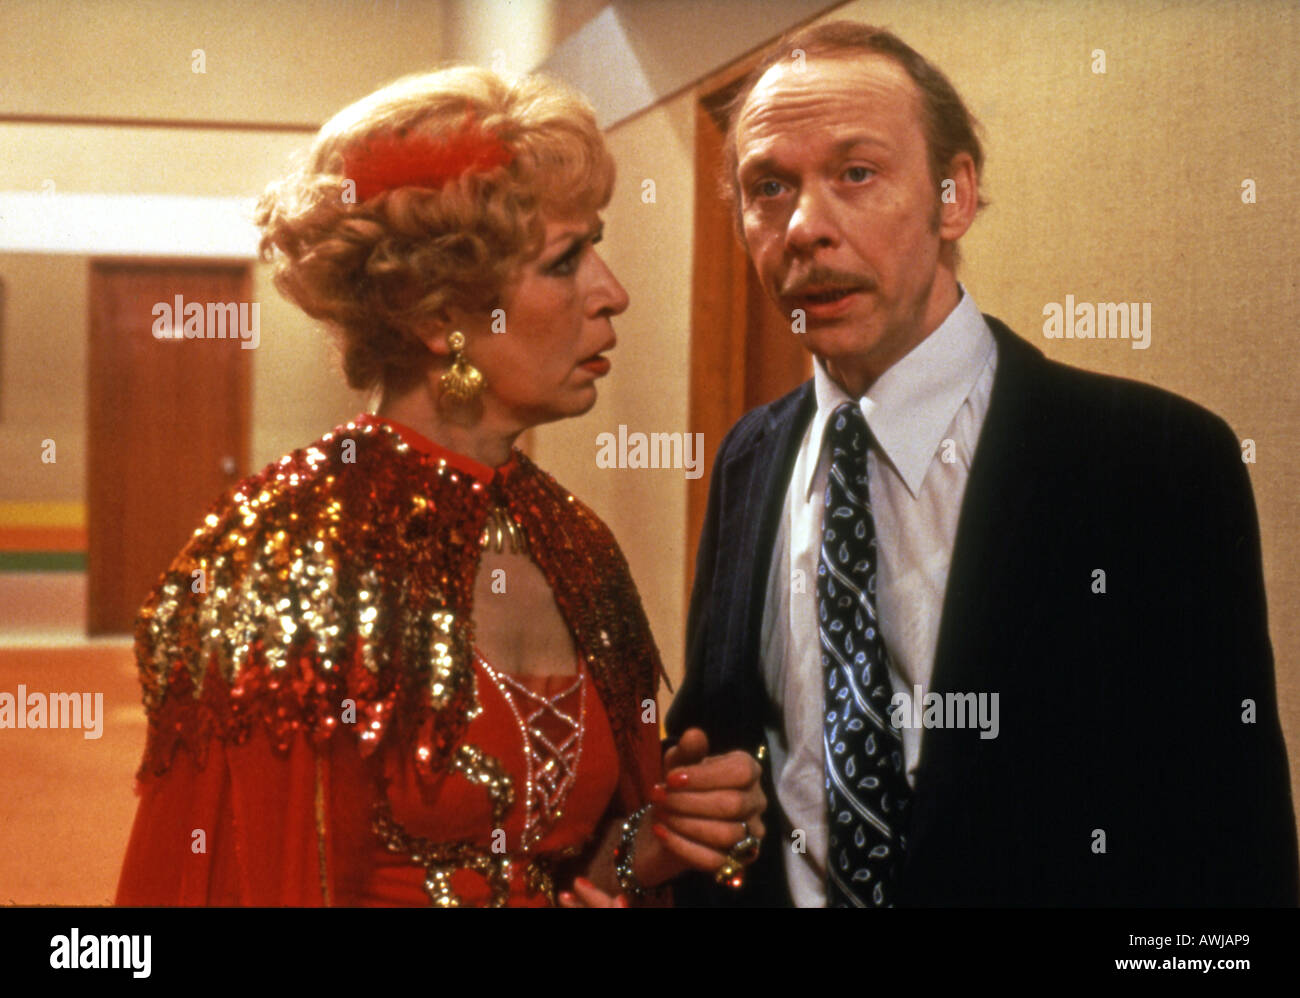 GEORGE AND MILDRED Yootha Joyce and Brian Murphy in the UK TV comedy series from 1980s - Stock Image